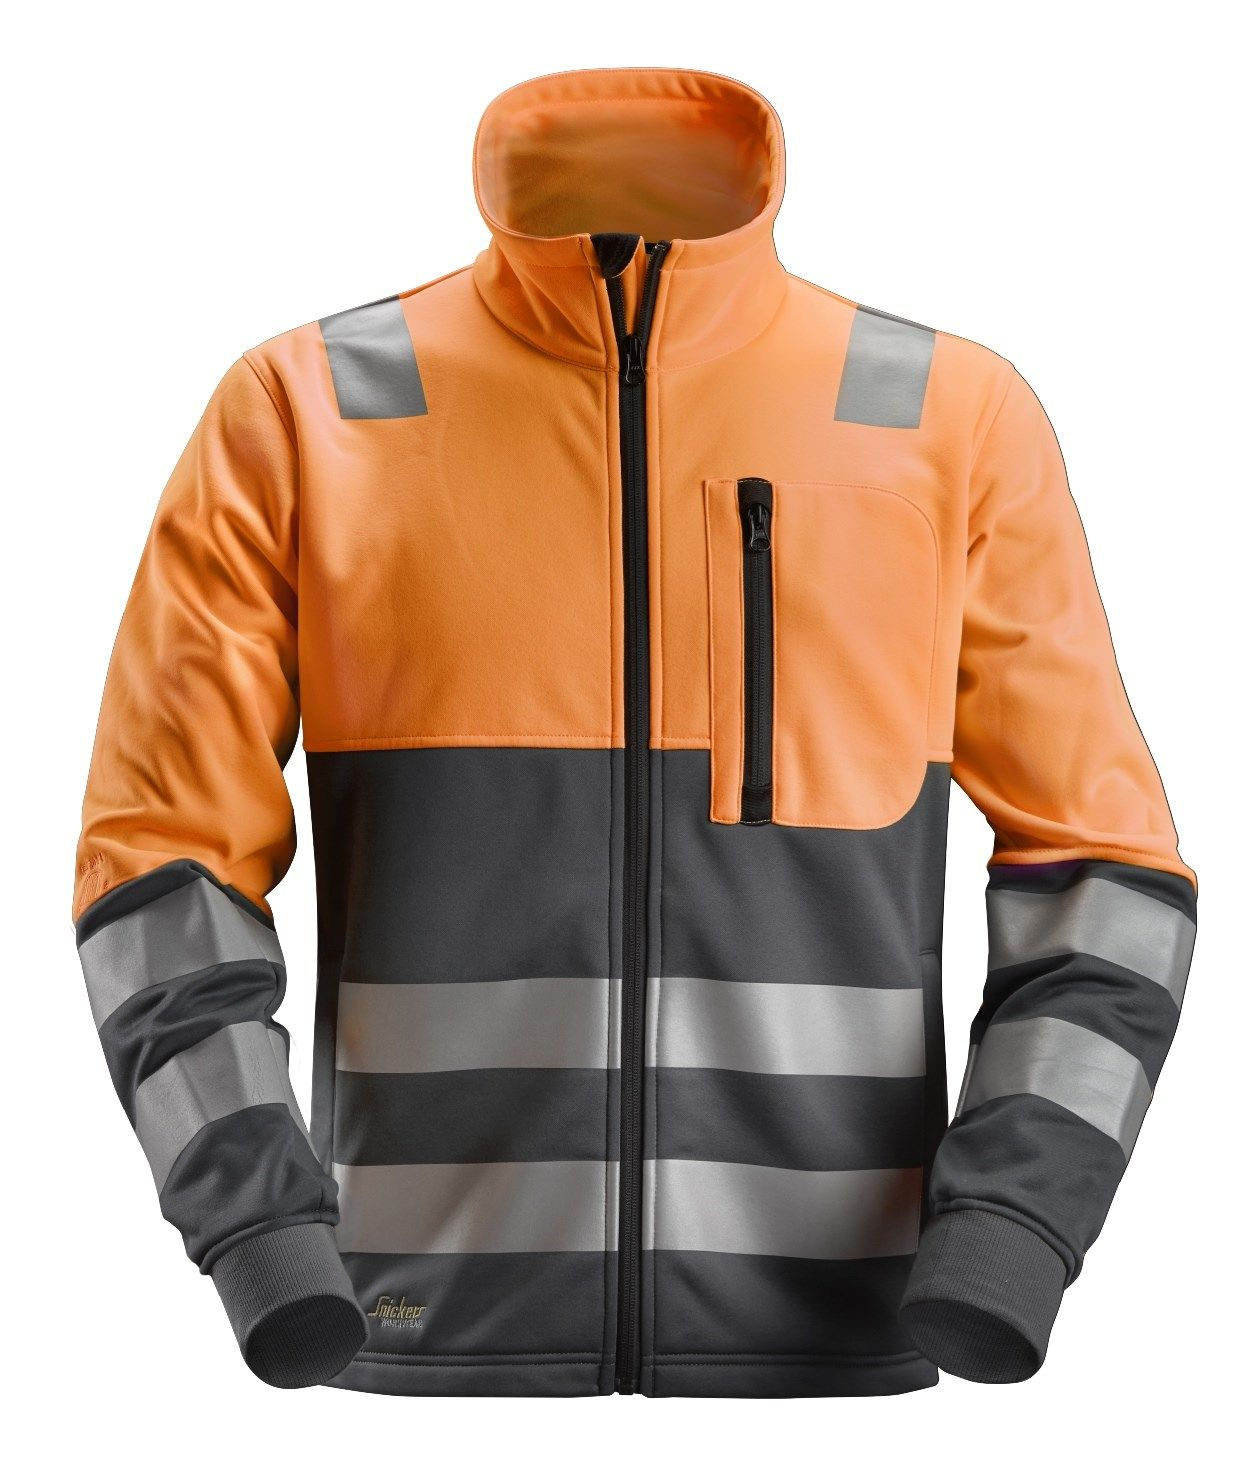 Snickers 8035 Allround Work High-Vis FZ Jacket Class 2 Orange